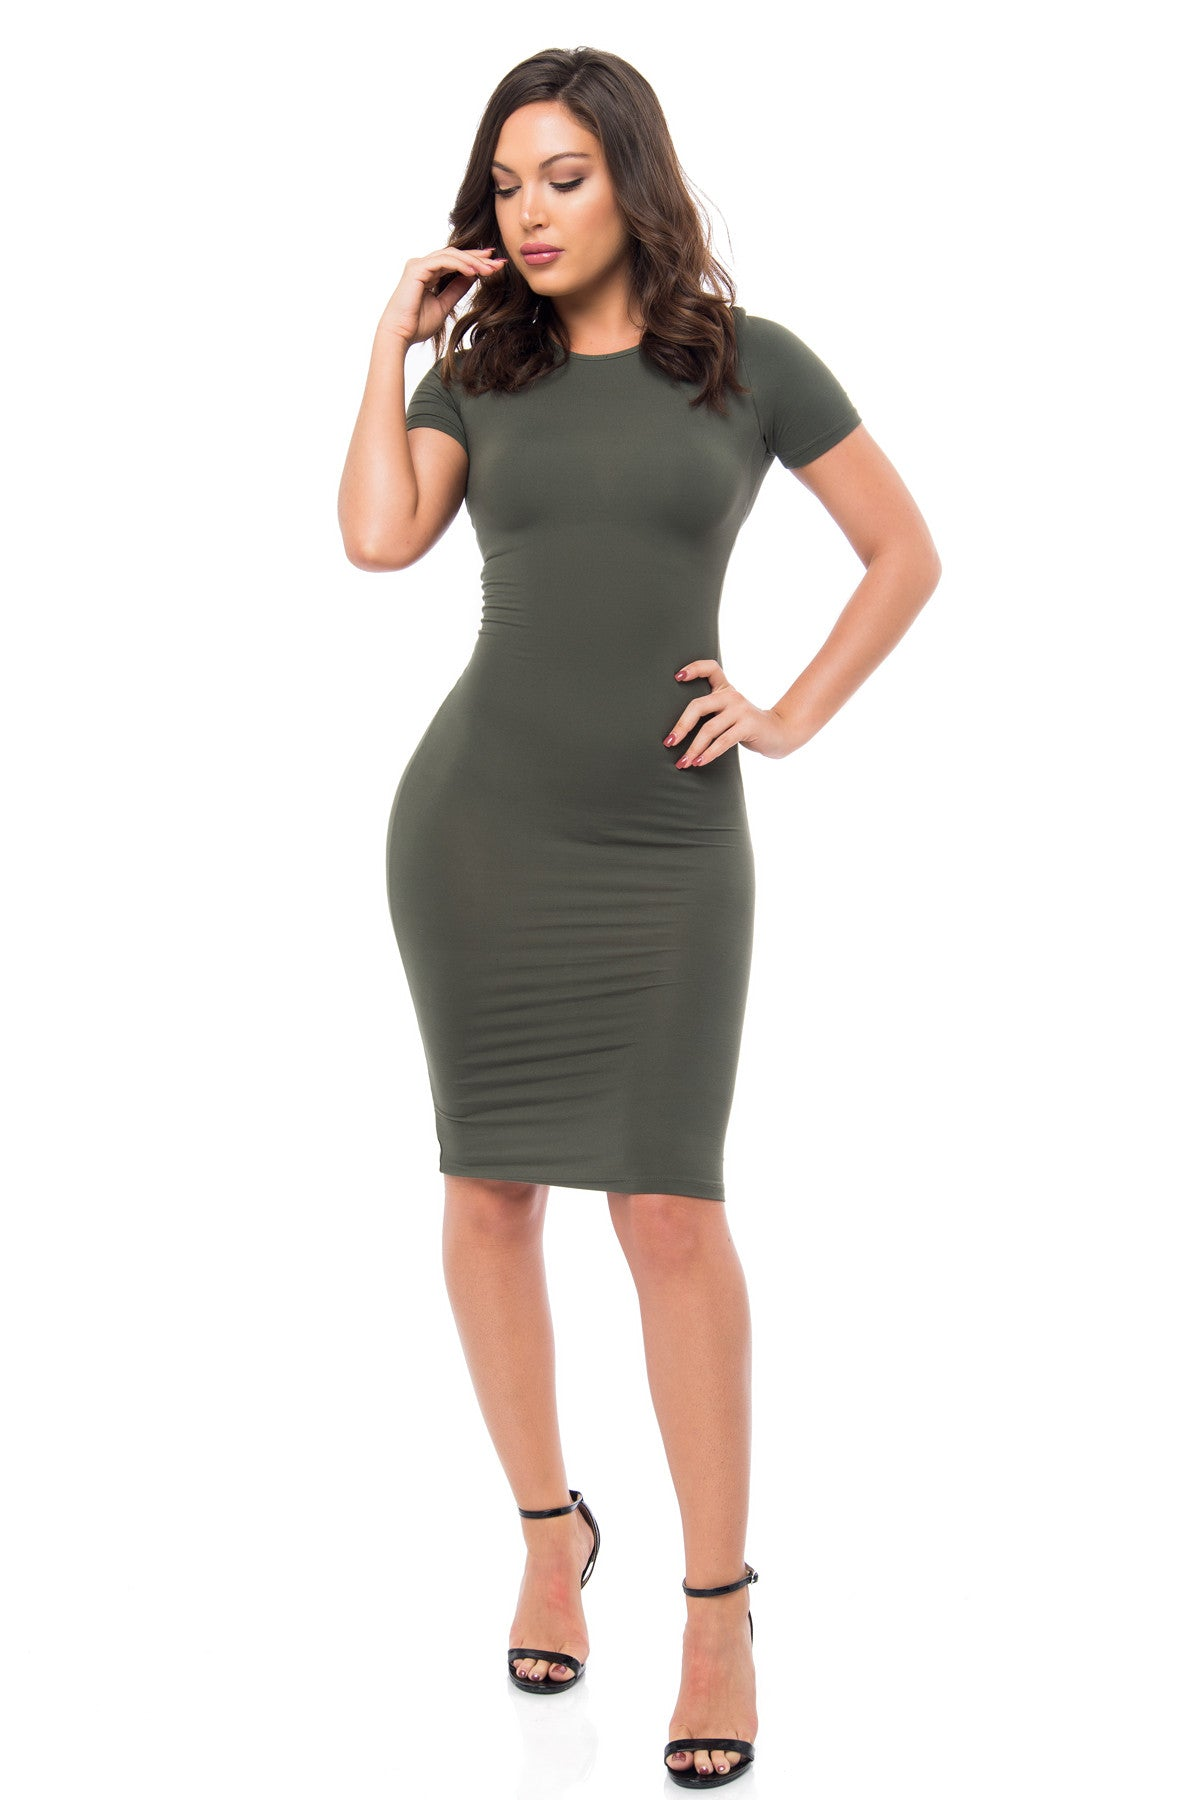 You Belong To Me Olive Dress - Fashion Effect Store  - 1